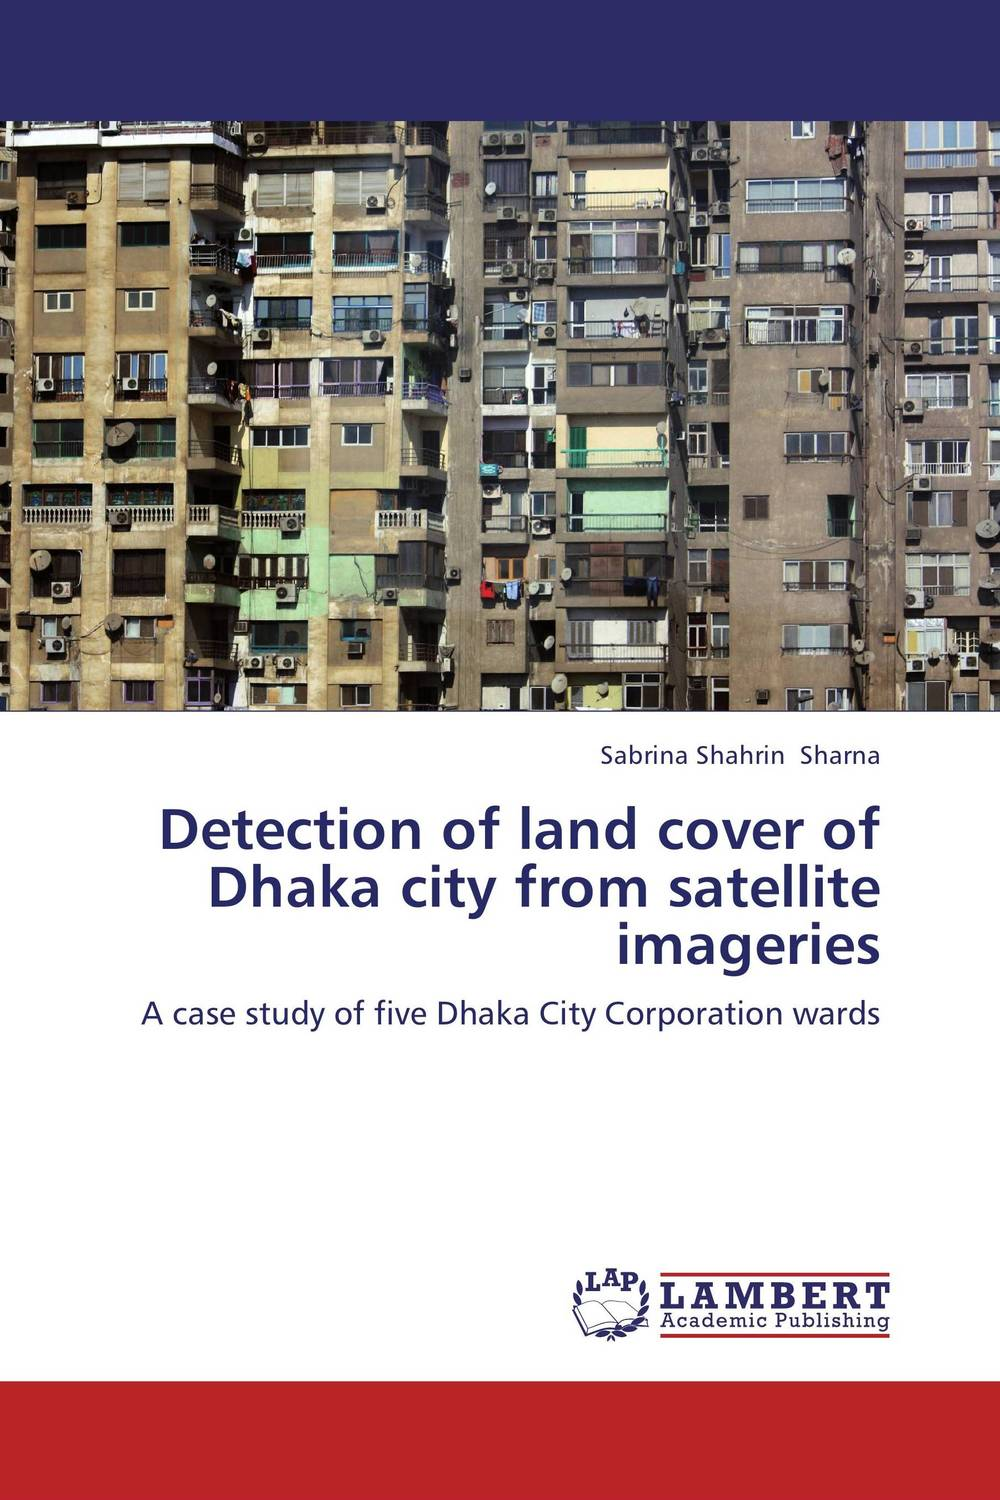 Detection of land cover of Dhaka city from satellite imageries breastfeeding knowledge in dhaka bangladesh